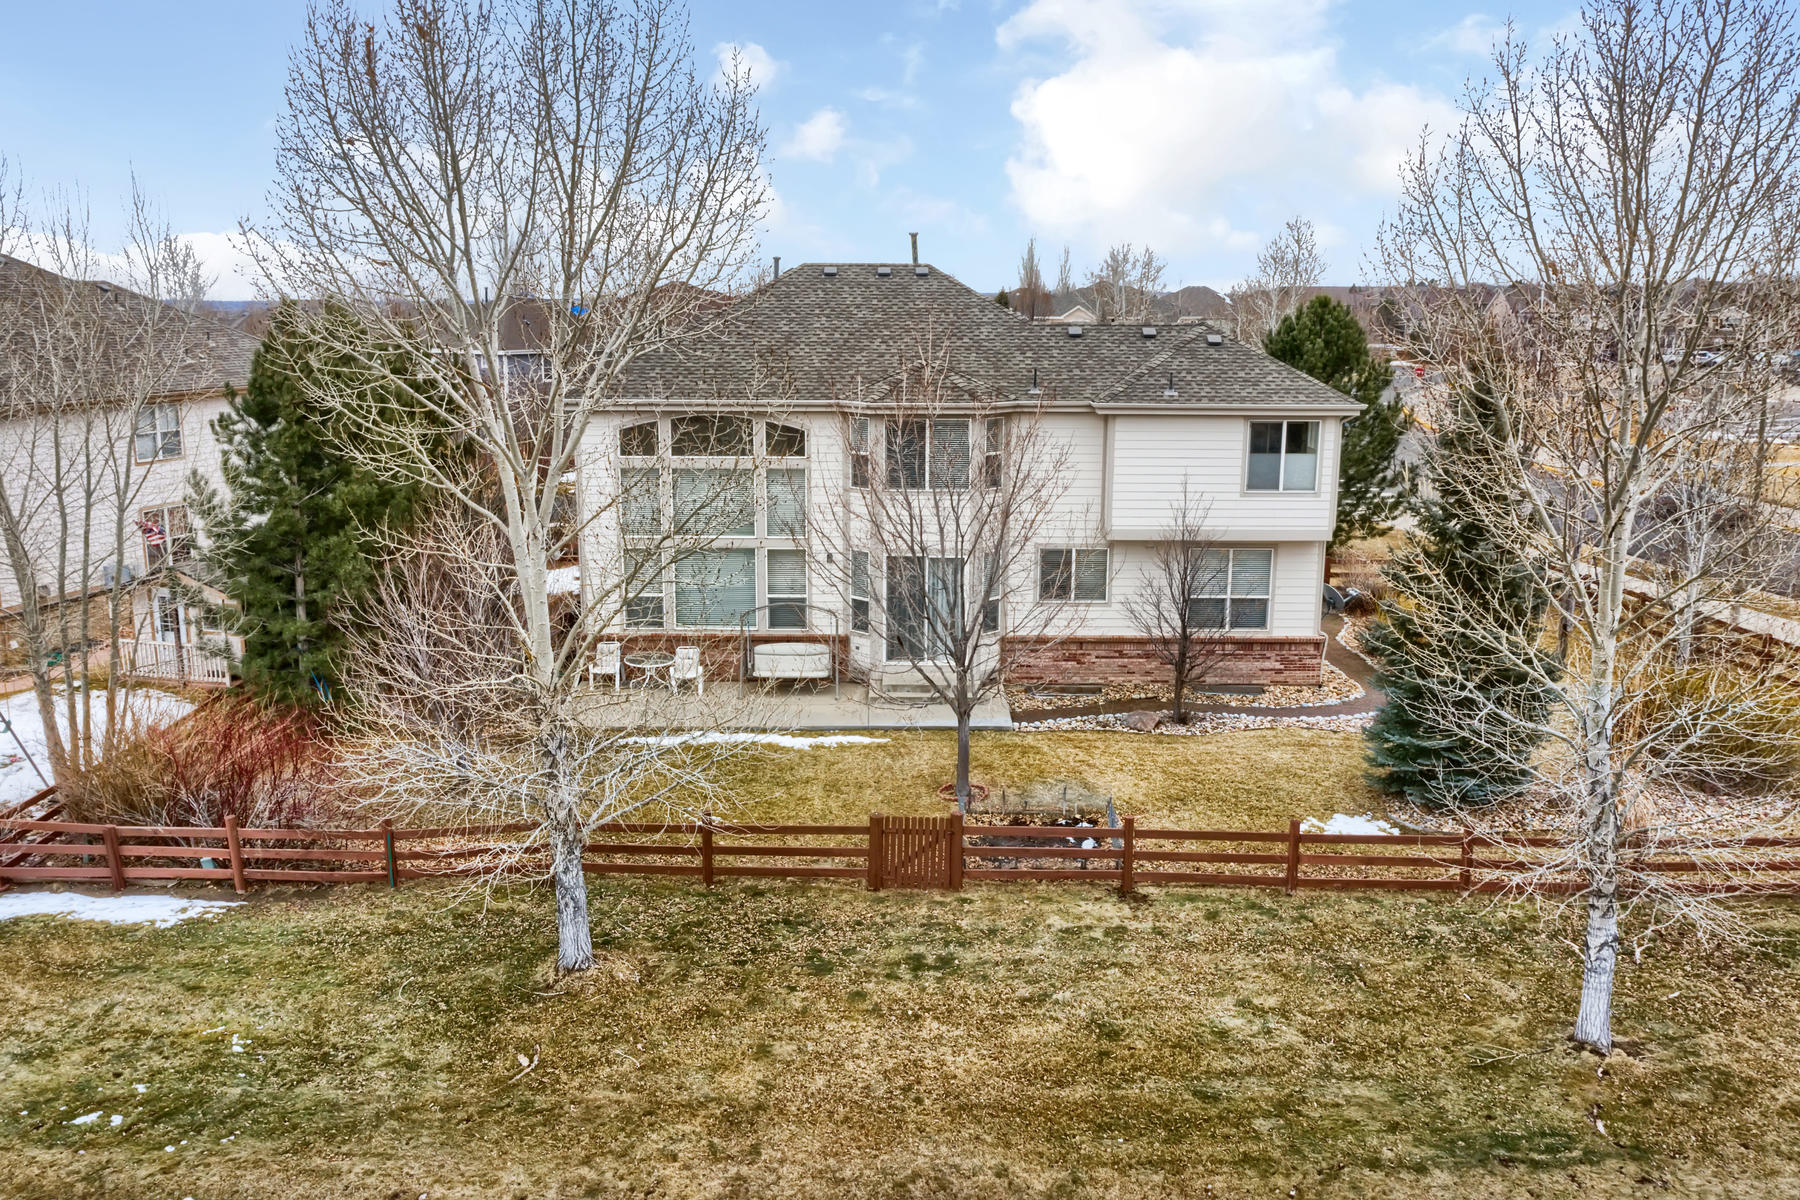 5447 Brookside Dr Broomfield-011-46-Aerial-MLS_Size.jpg